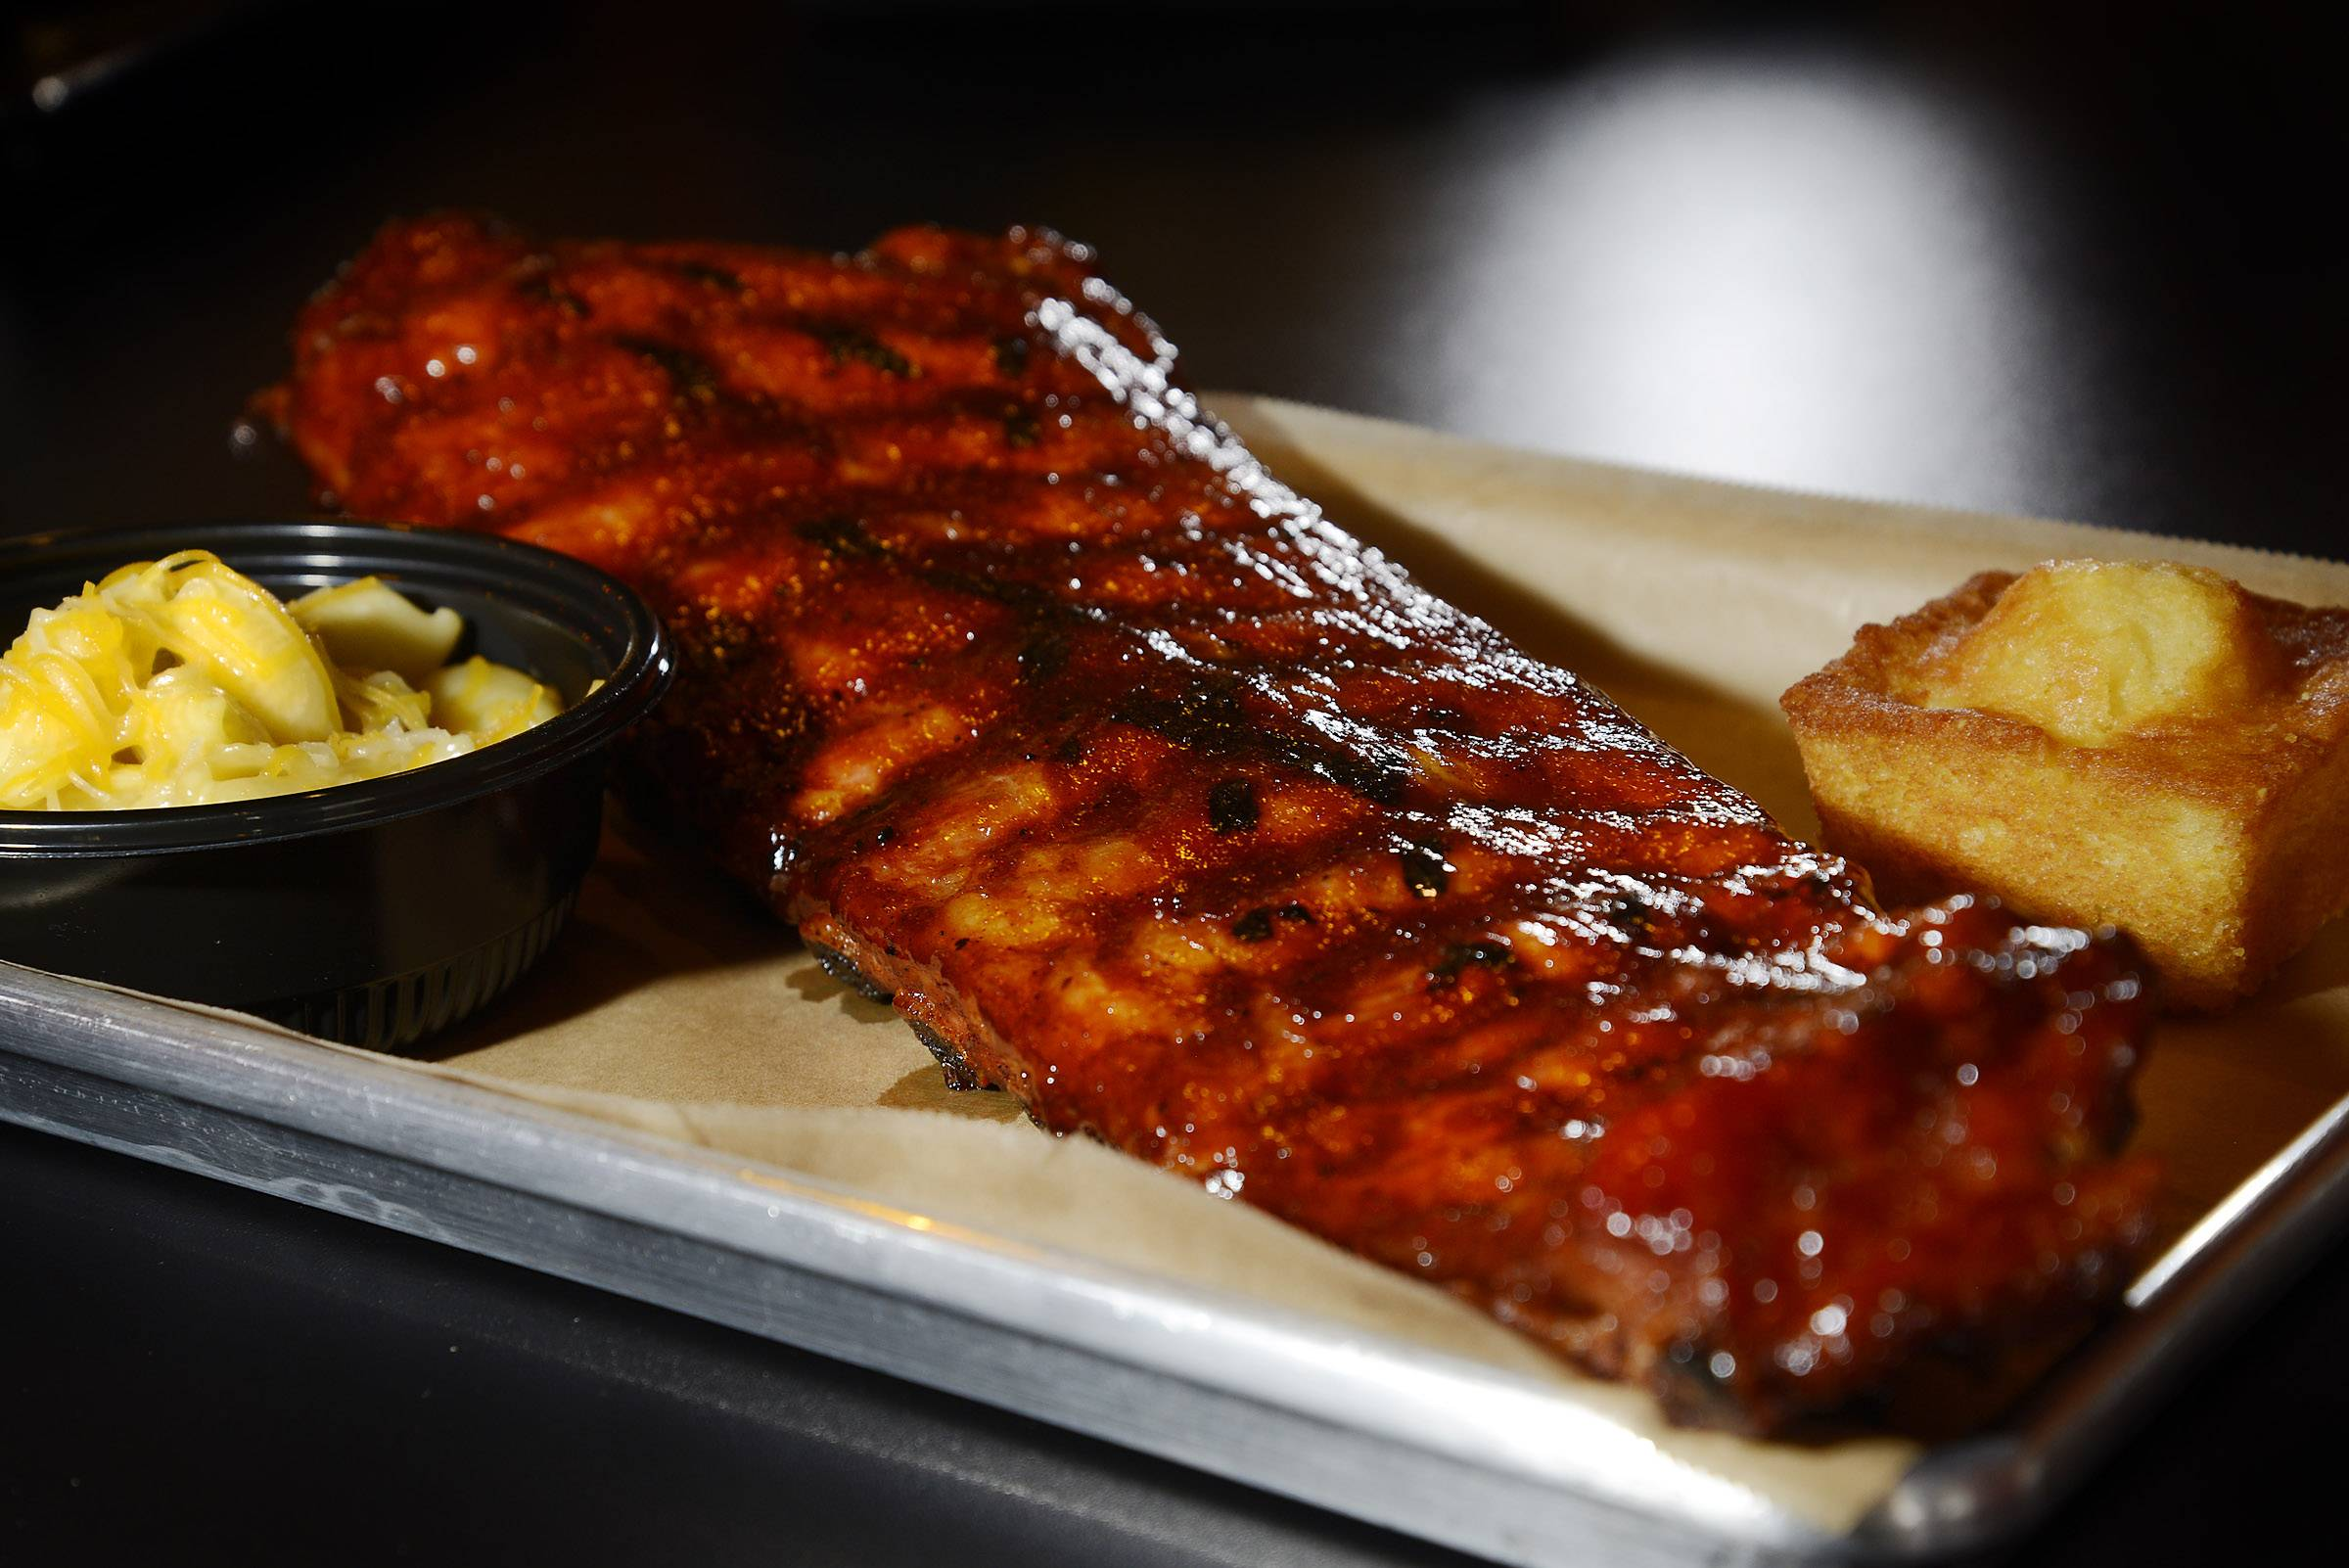 Hungry? A full slab of ribs with sides of cornbread and macaroni and cheese at Rock 'n Ribs BBQ in Lake Zurich will fill you up. Not that hungry? Order a third of a rack.